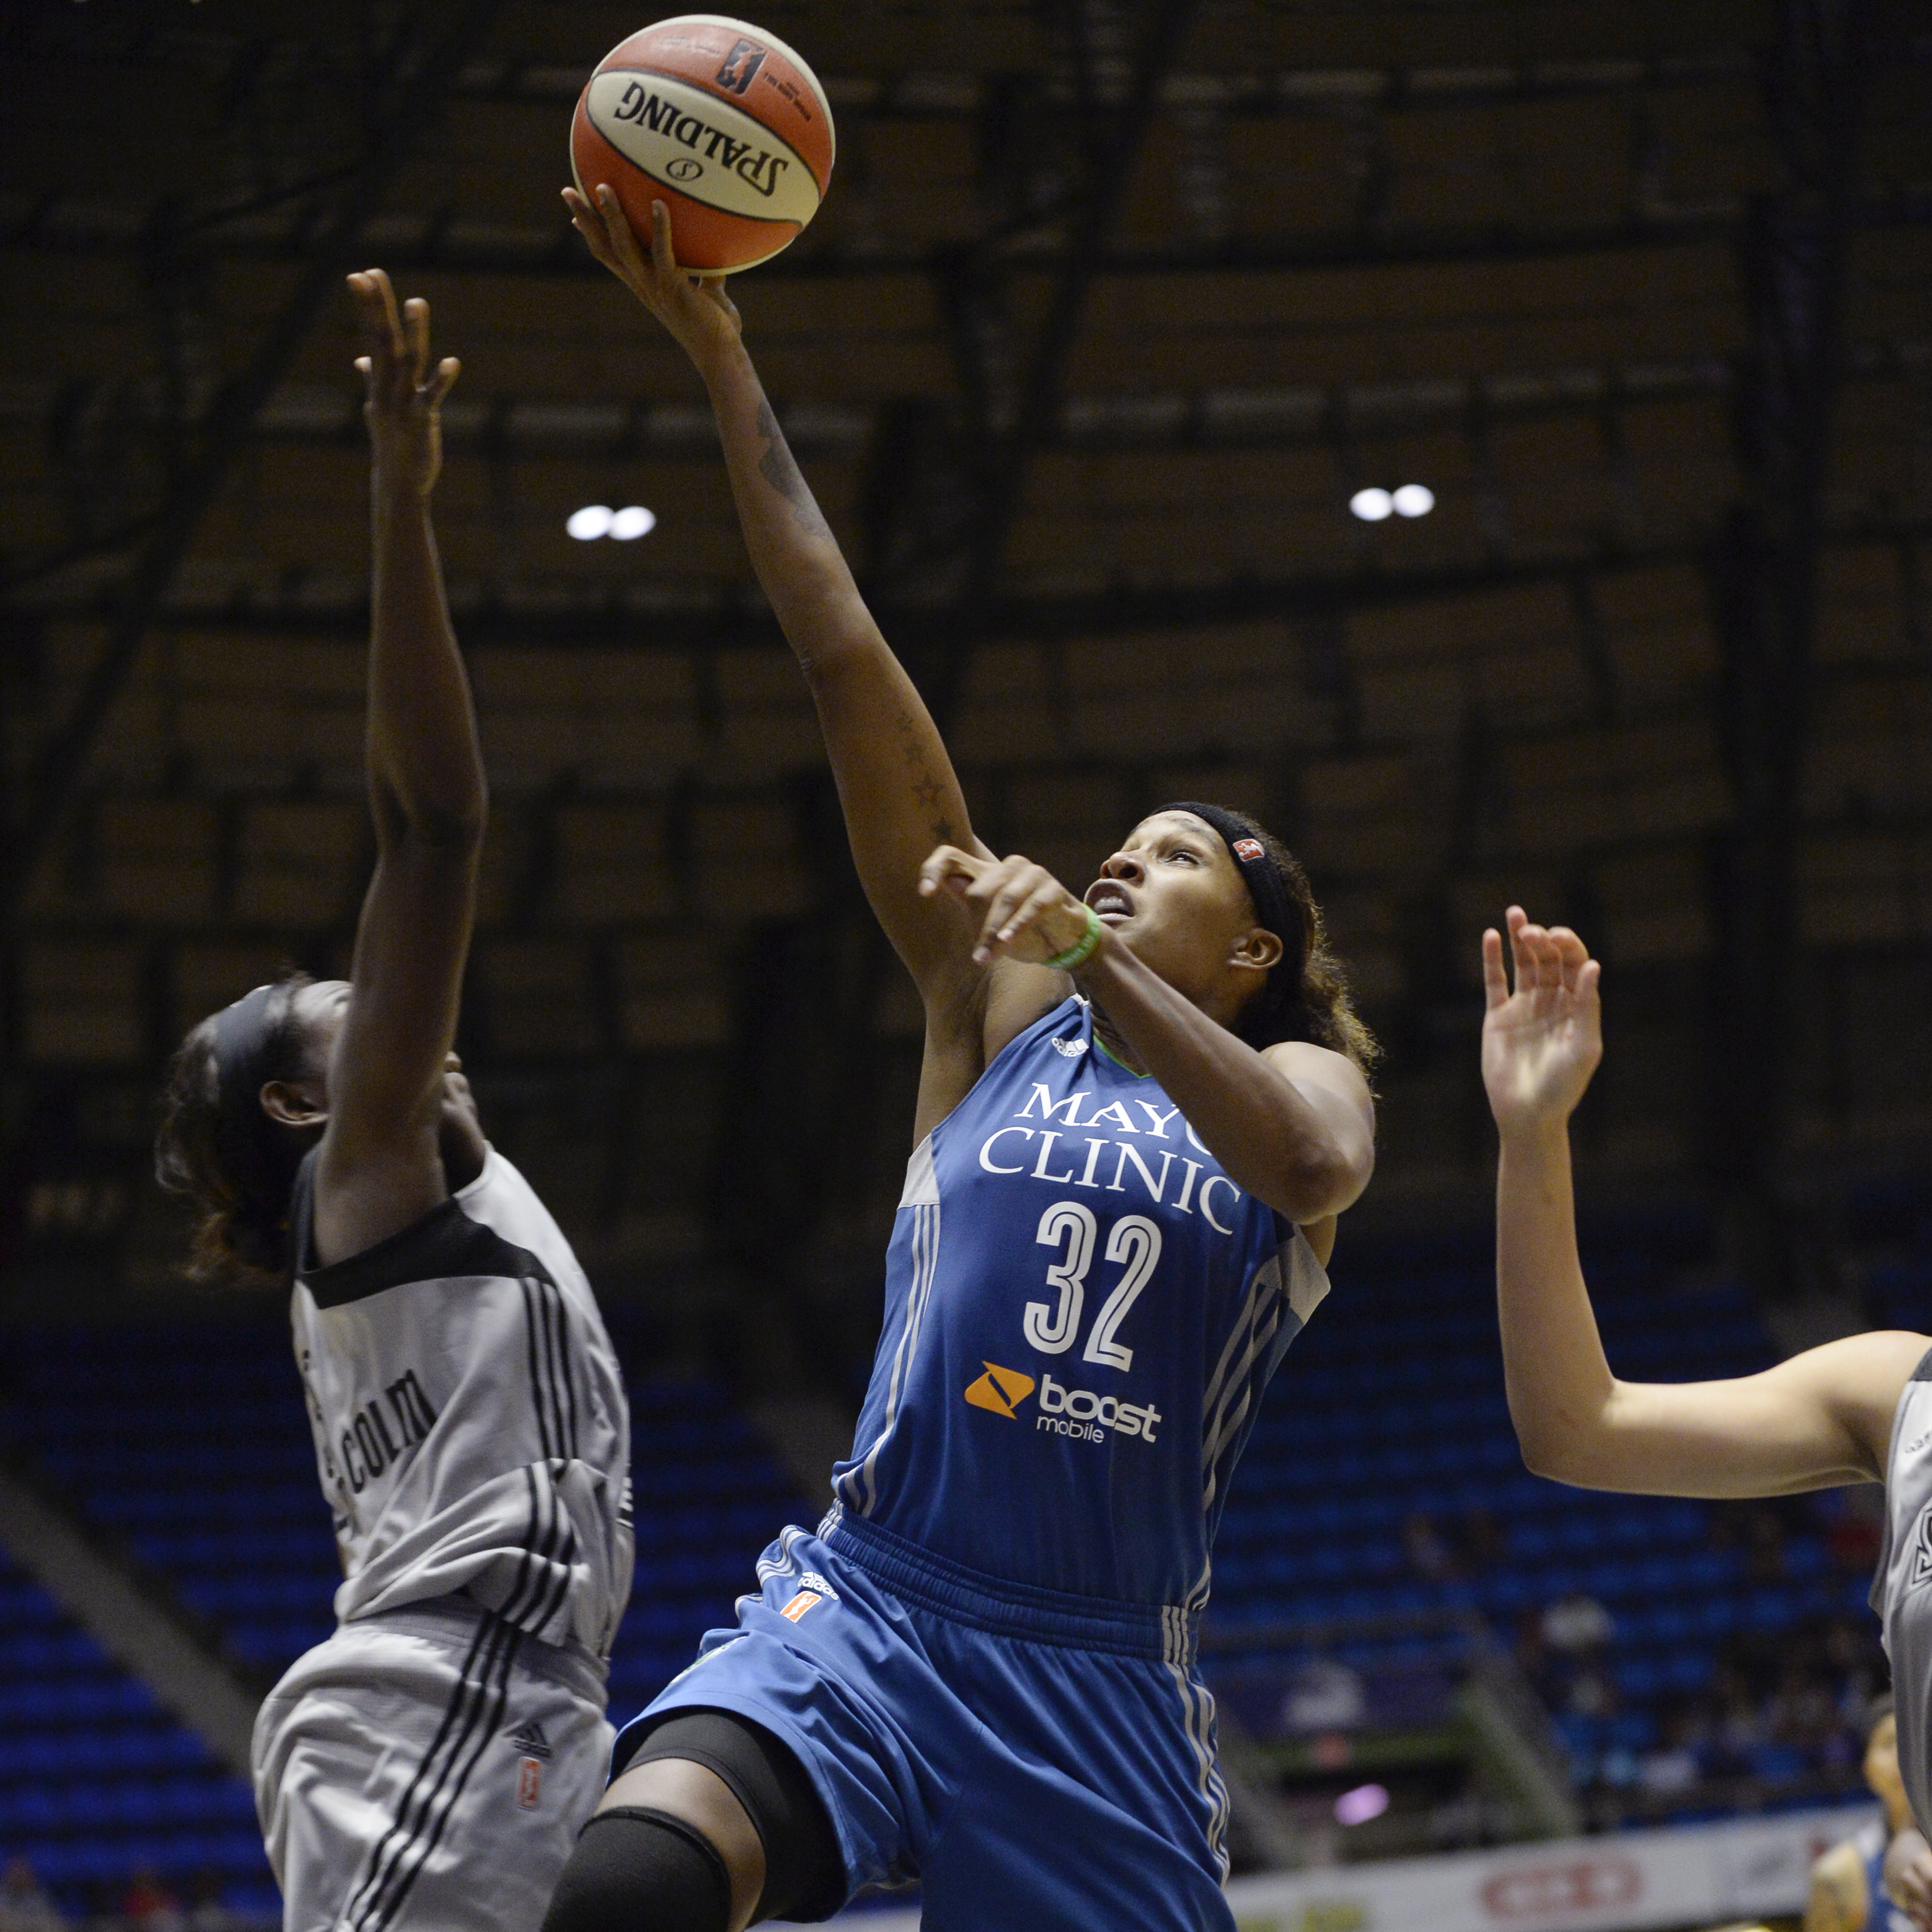 Lynx forward Rebekkah Brunson had a great game on Friday night, scoring 12 points and grabbing nine rebounds.